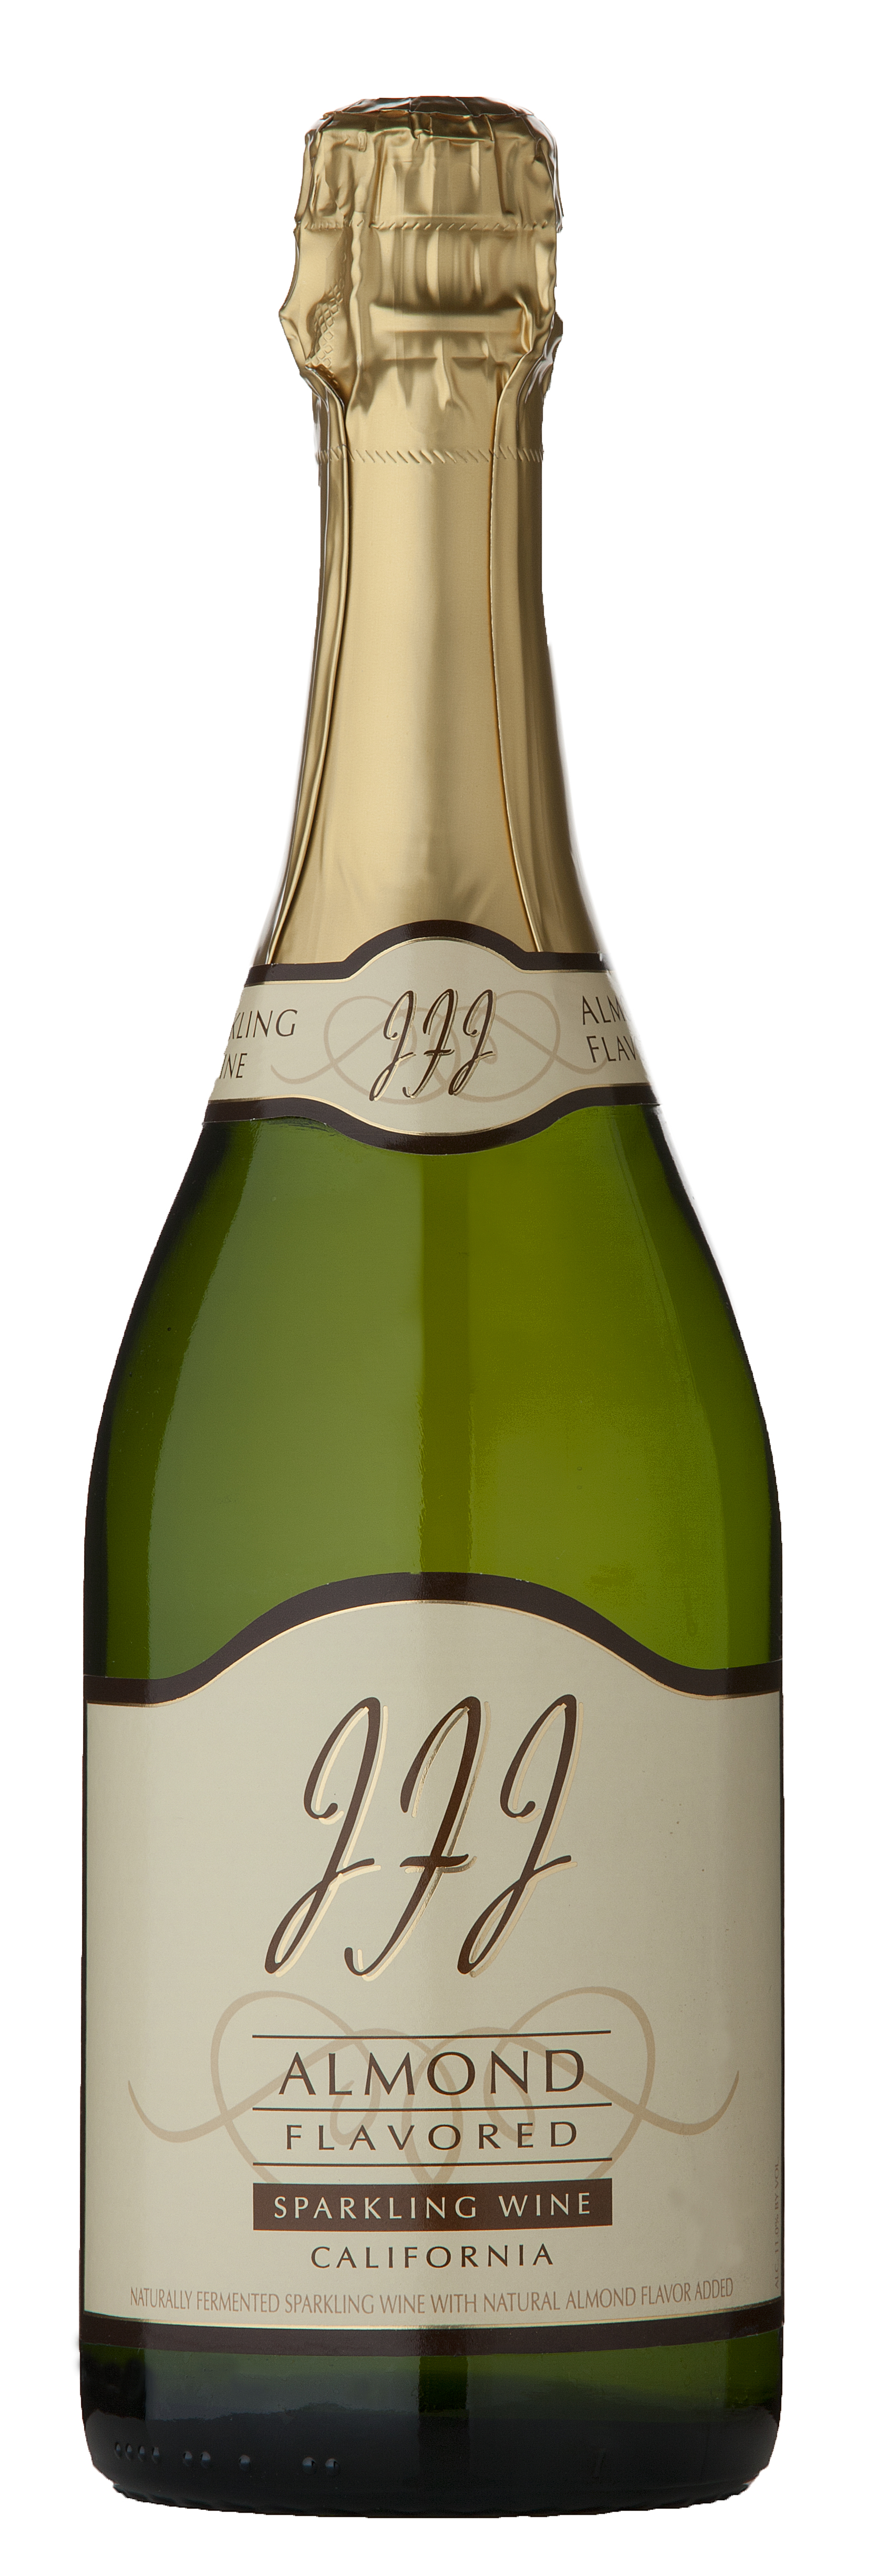 champagne or sparkling wine essay Champagne + sparkling wine the best champagne pairings champagne is delicious alone, but even better when smartly partnered up with a delicious bite.